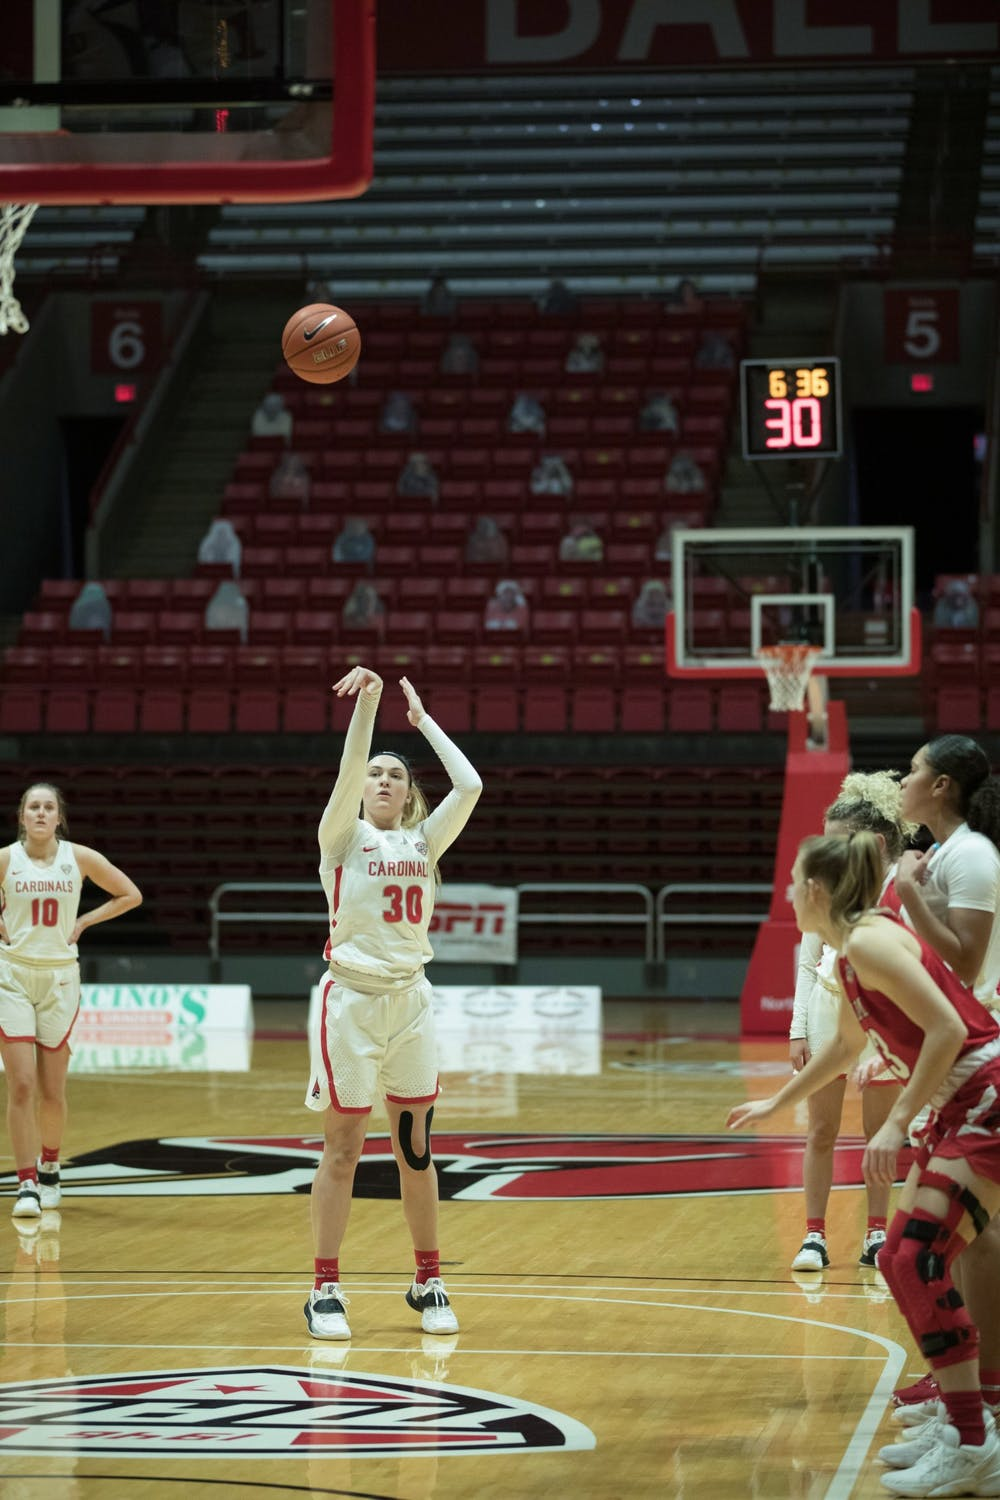 <p>Cardinals redshirt sophomore guard Anna Clephane shoots a free throw during a game against the Miami University Redhawks Jan. 27, 2021, at John E. Worthen Arena. The Cardinals took the win 85-82. <strong>Grace Walton, DN</strong></p>